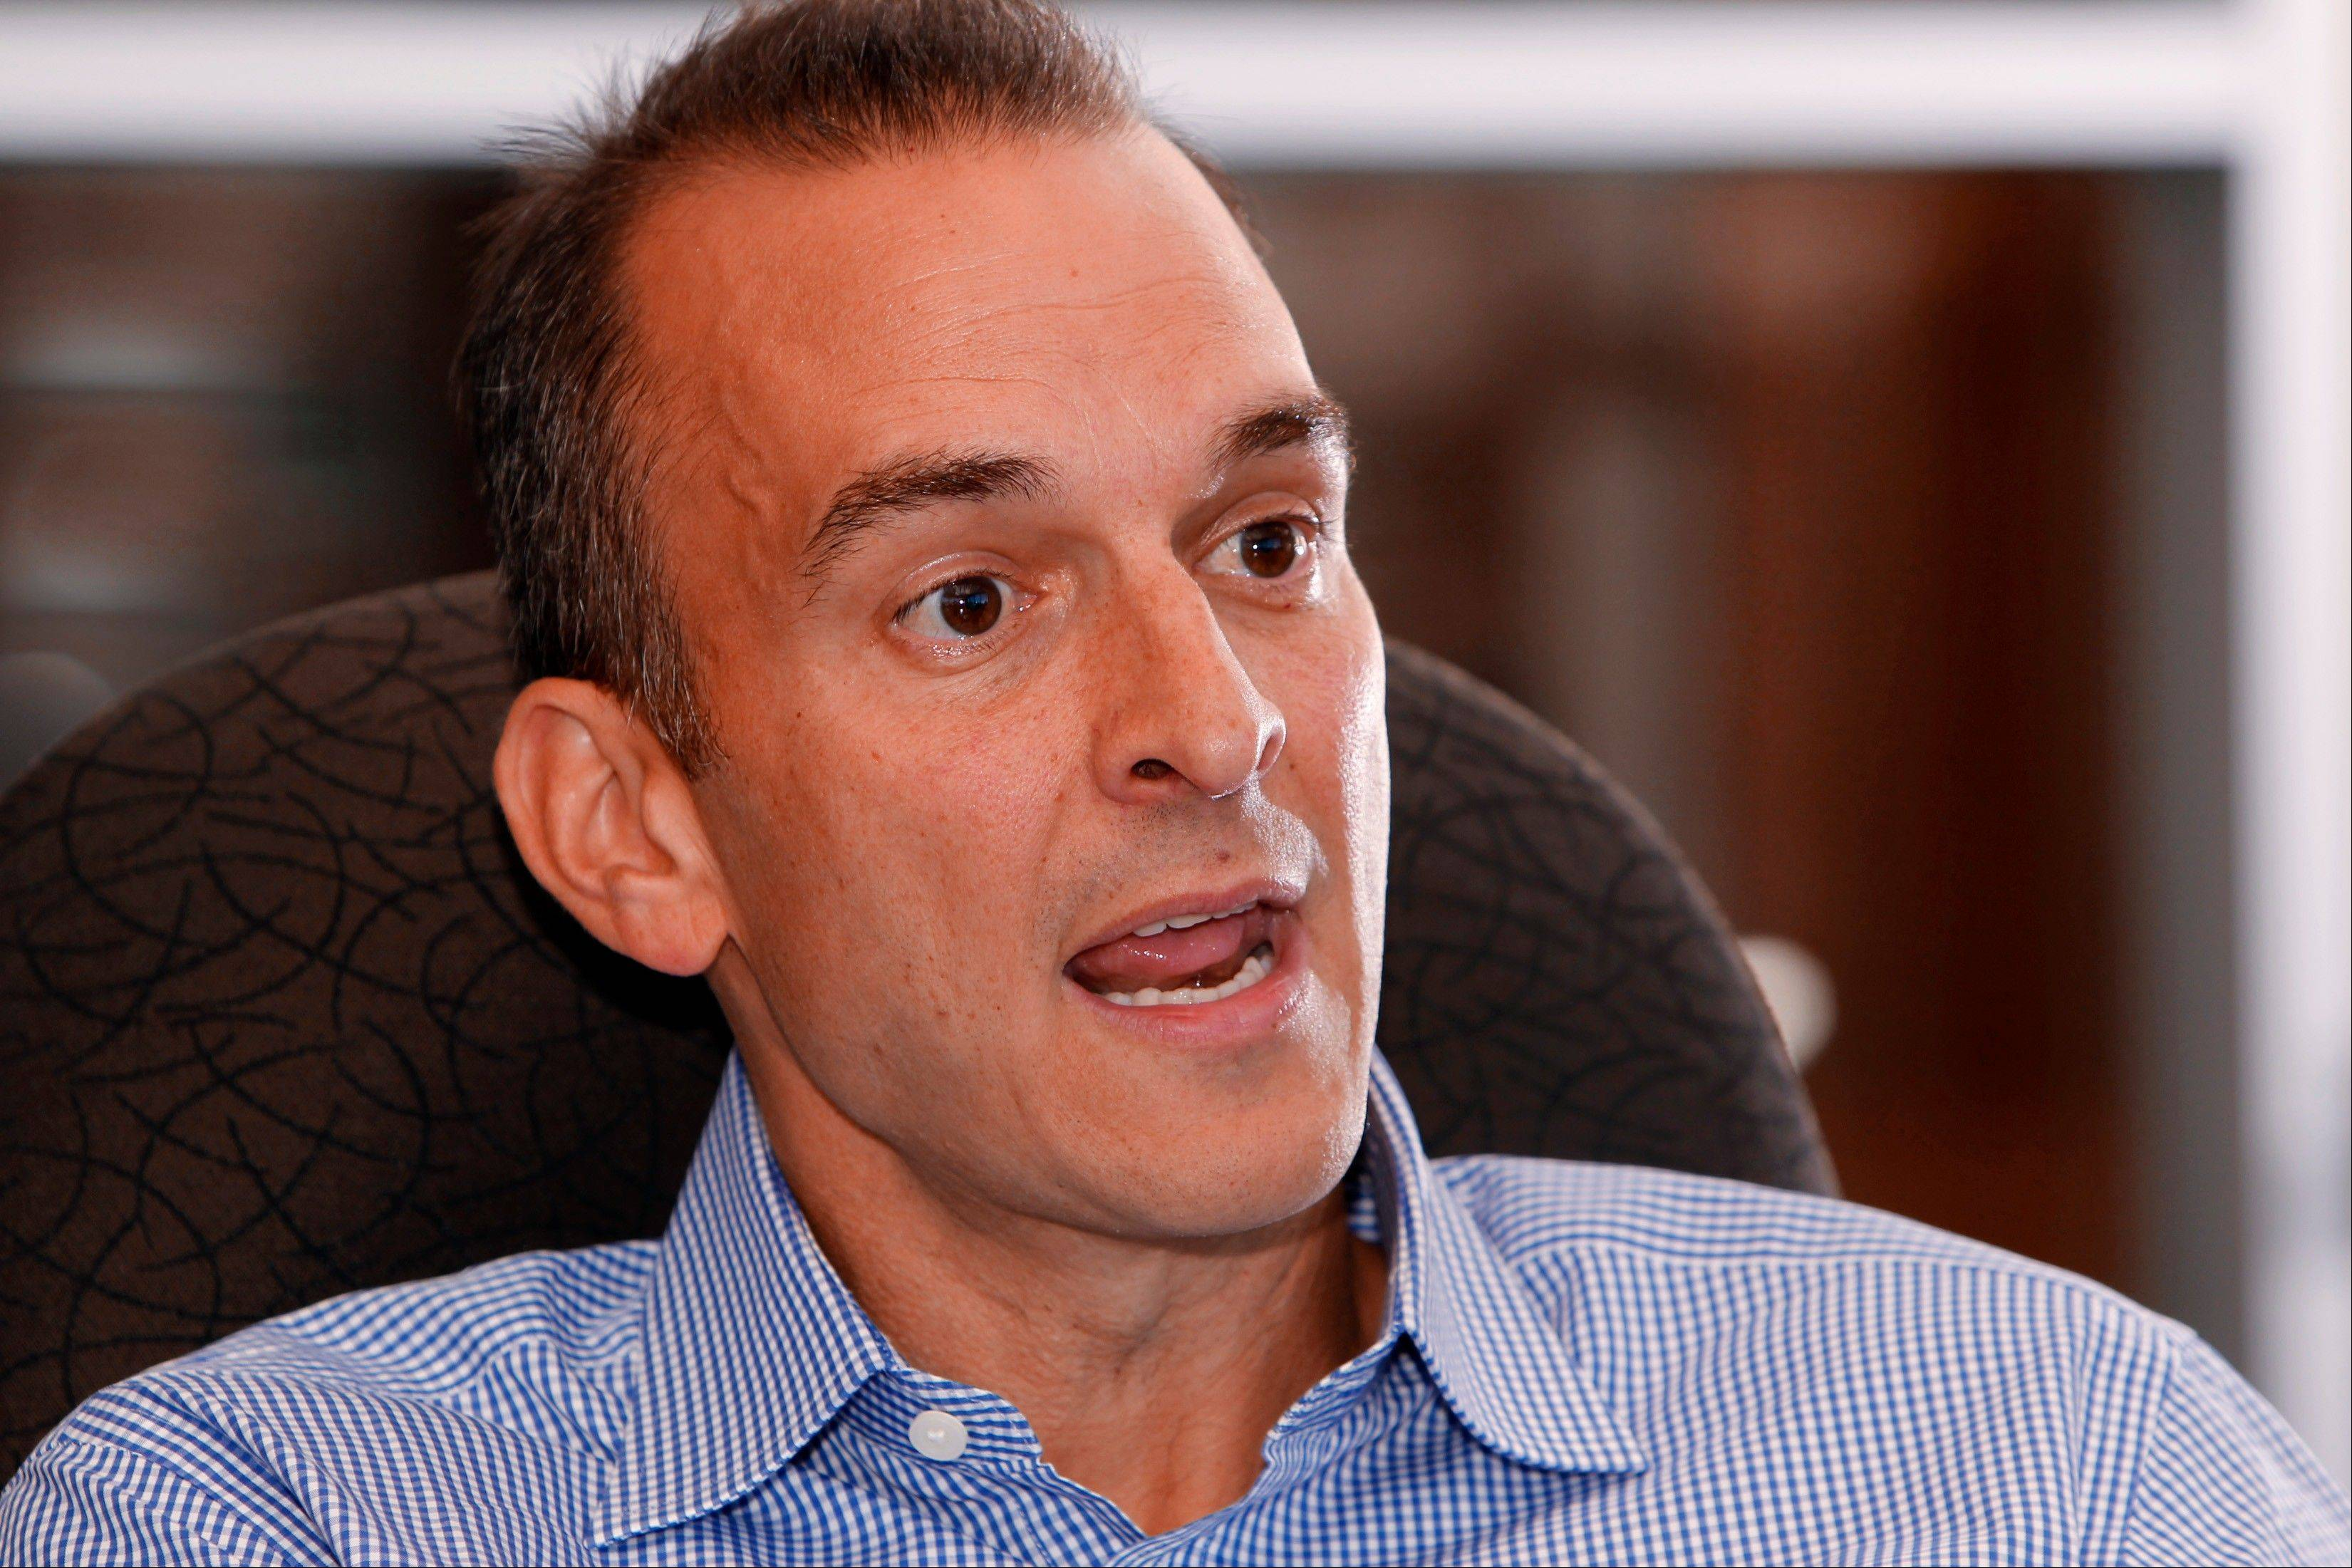 Travis Tygart, the CEO of the U.S. Anti-Doping Agency, says his mission is to make sports a sanctuary for finding out who's most talented and who worked the hardest, not who's the best cheater. Most recently, that mission has led him to spearhead the case that's ended lance Armstrong's cycling and triathlon careers.